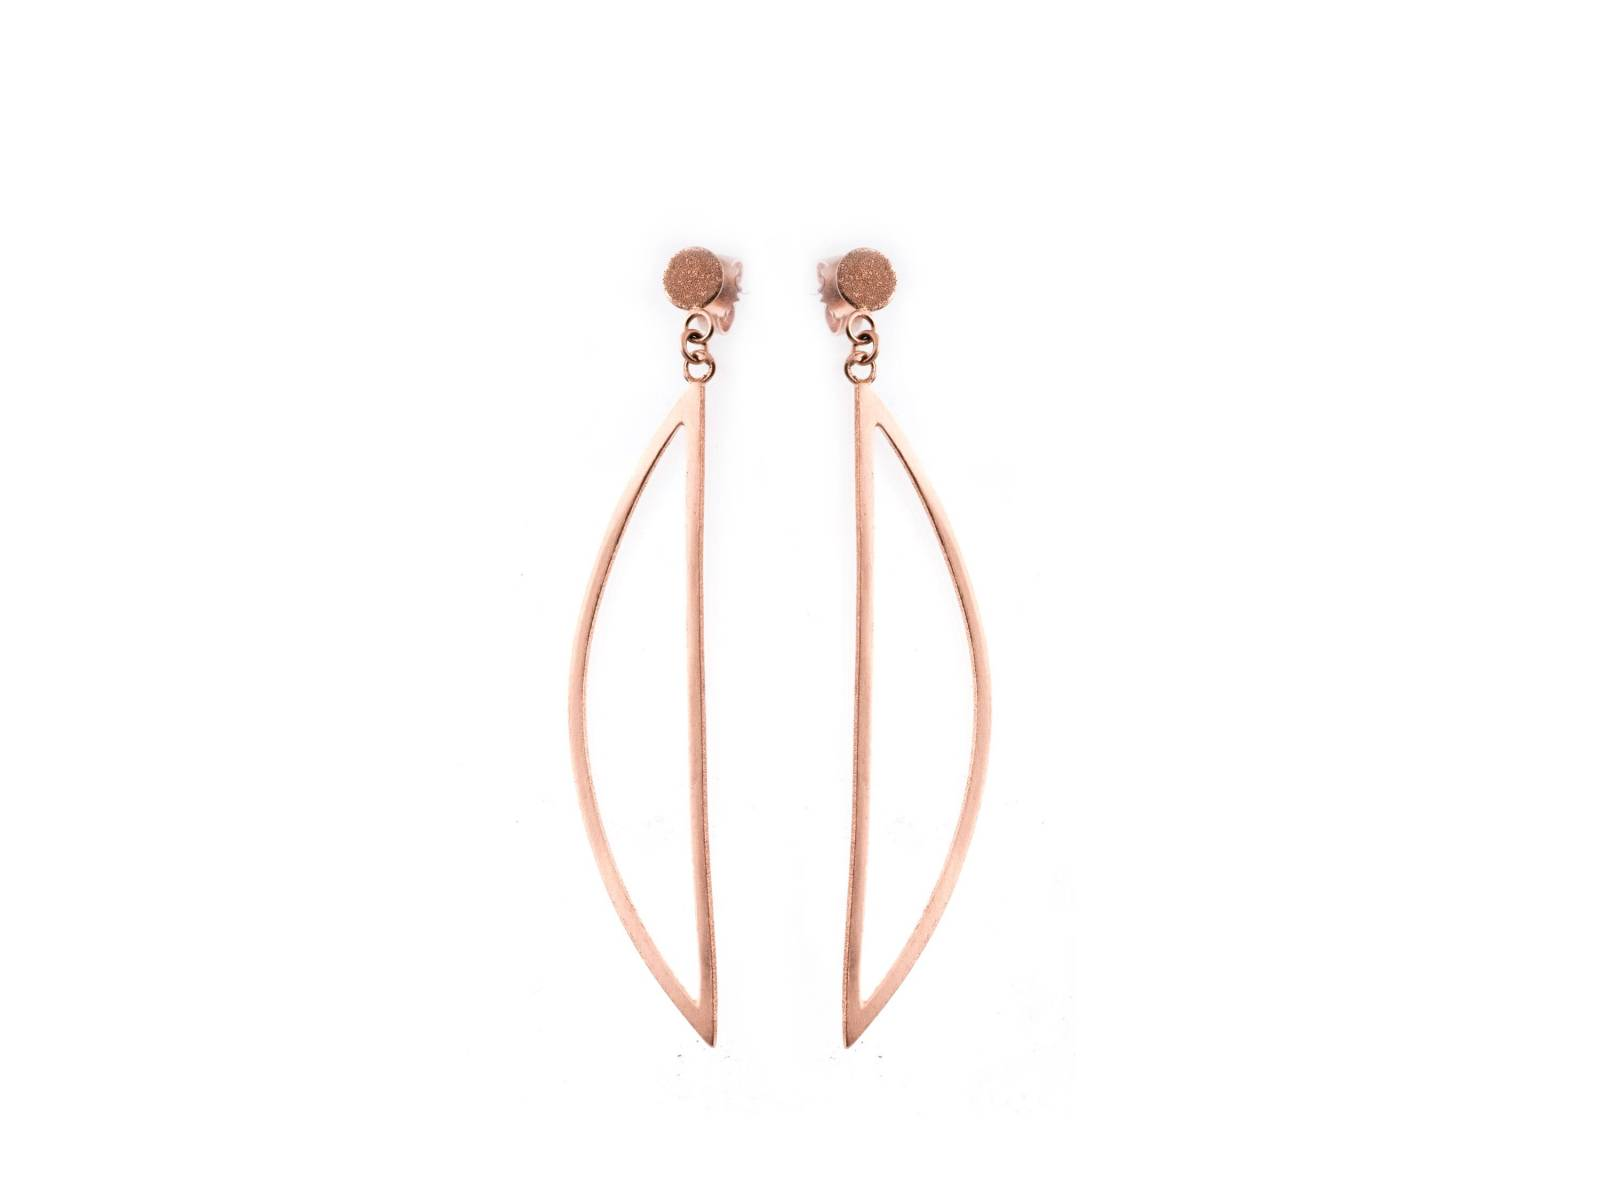 MOMENTS_Sashimi large earrings - pink gold plated - diamanté - €330